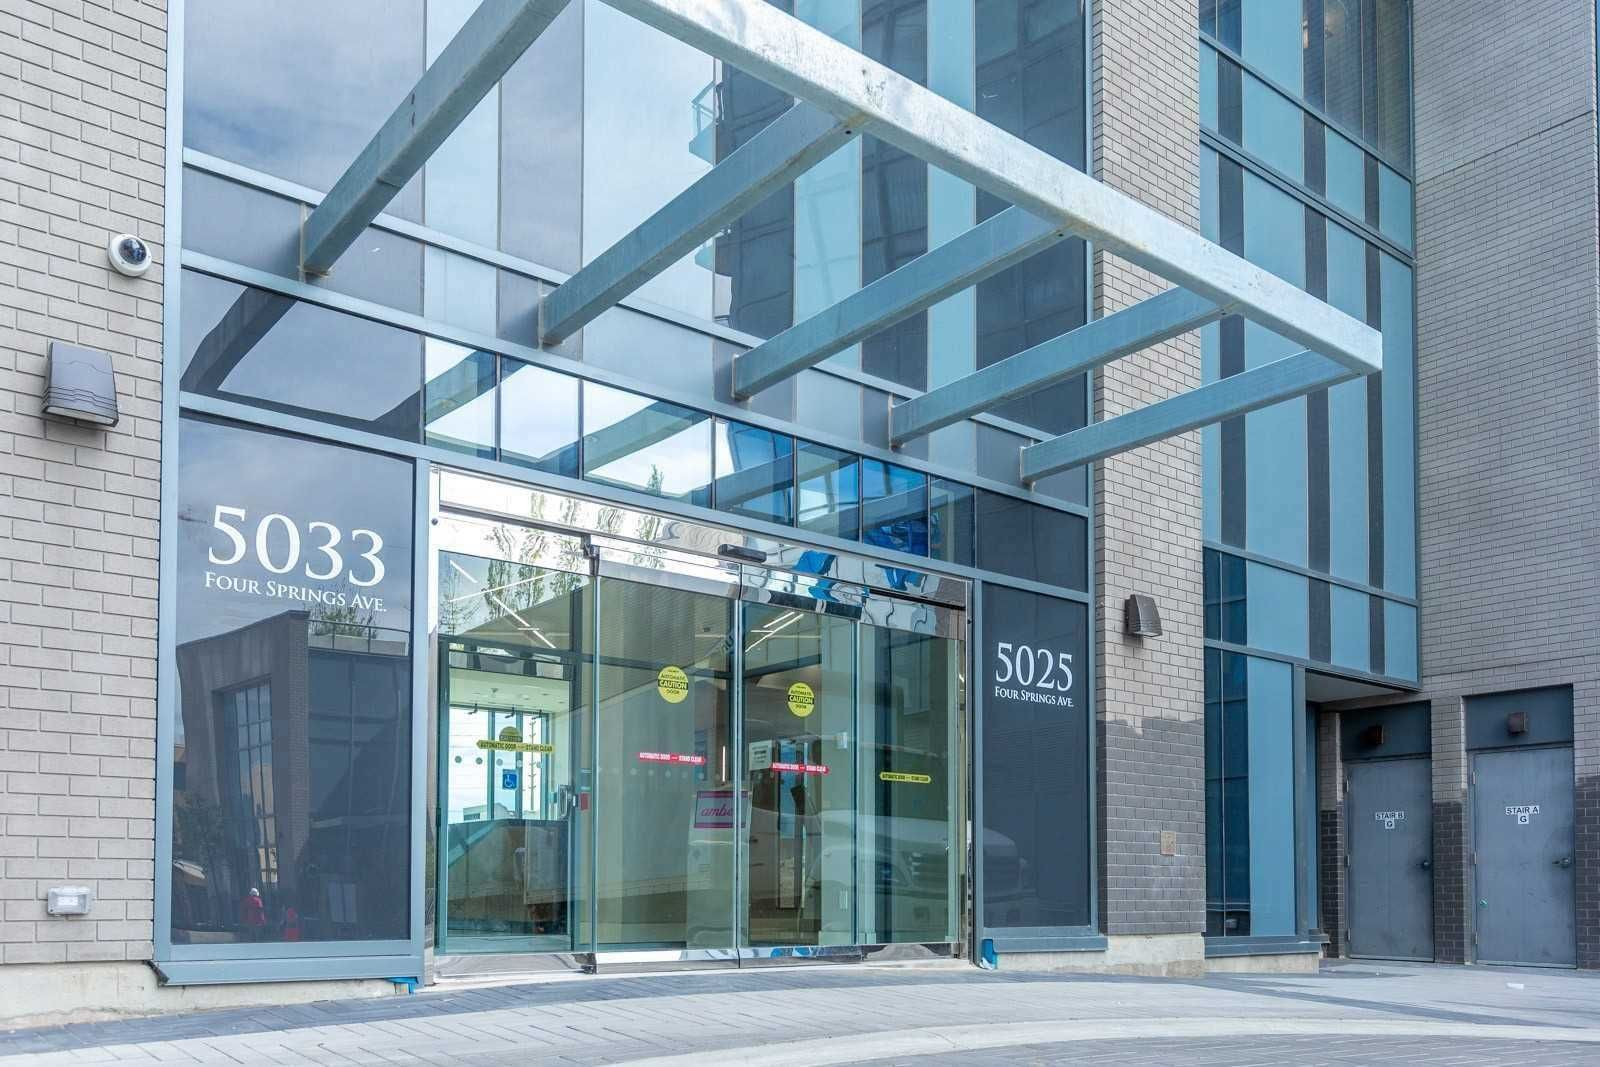 5025 Four Springs Ave, unit 1708 for sale in Toronto - image #2